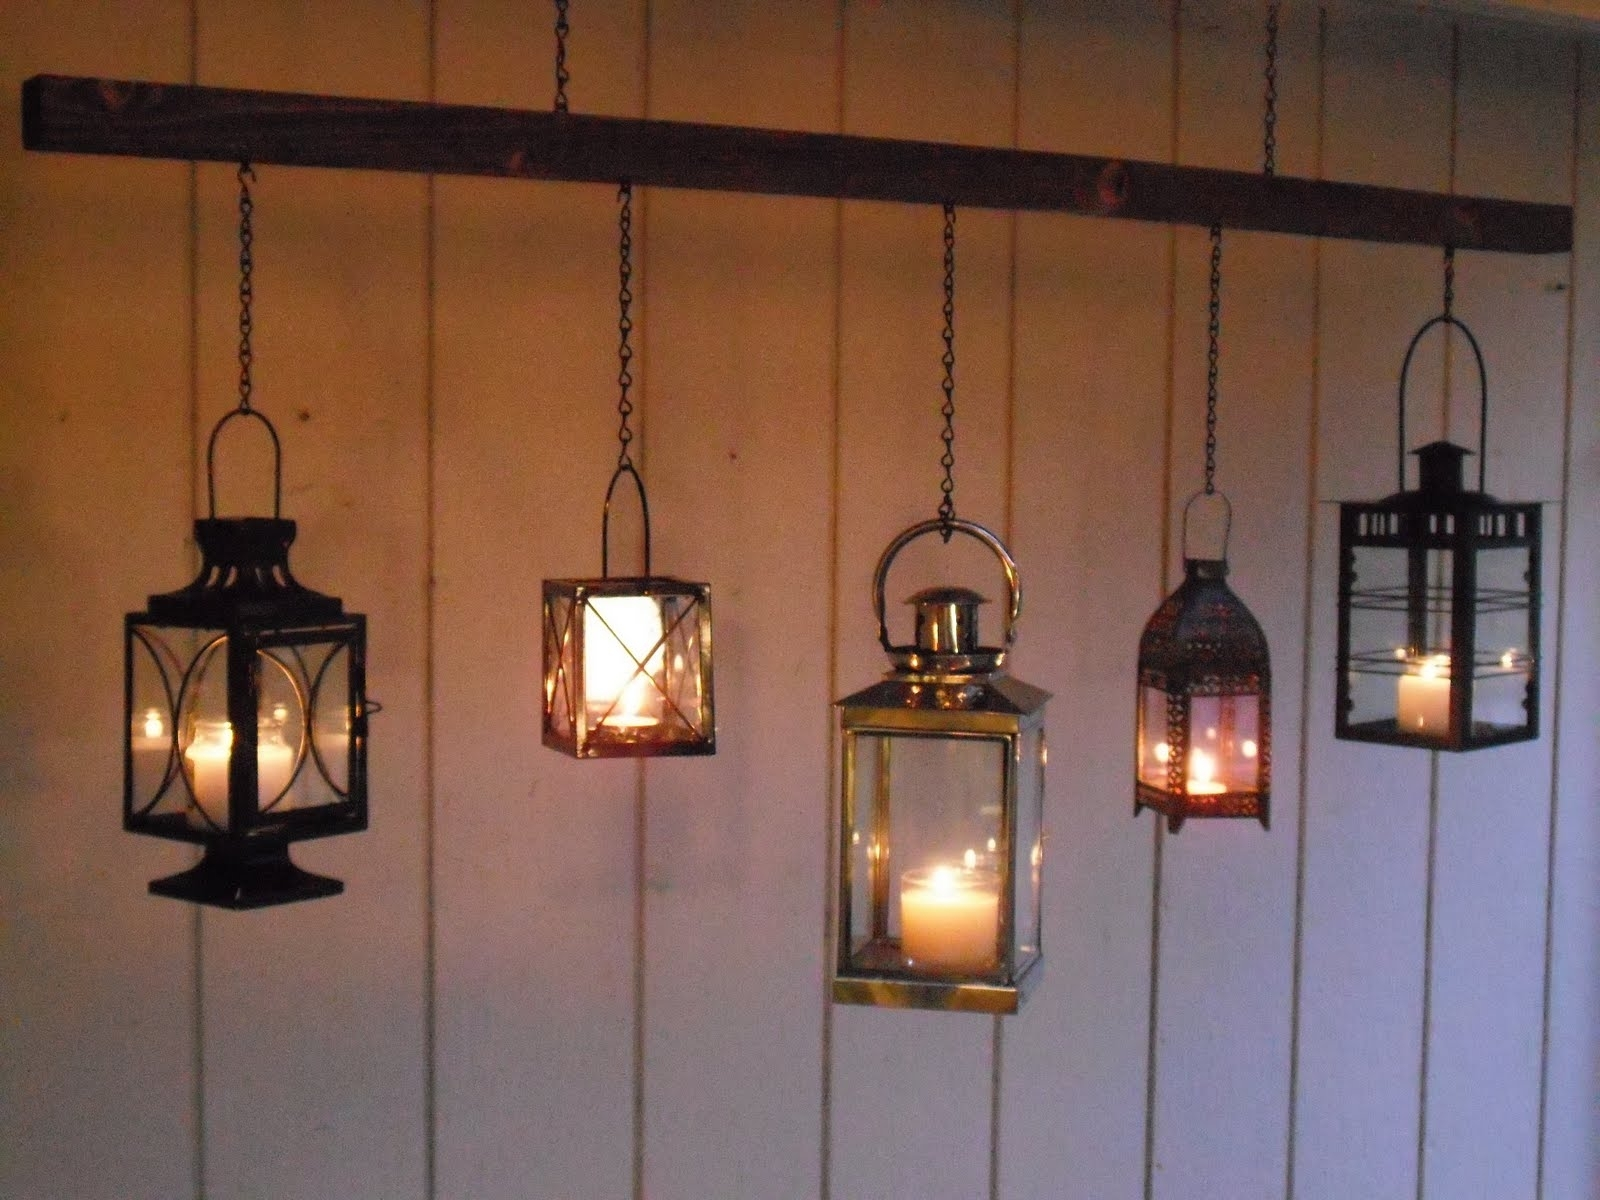 Outdoor Hanging Lanterns 15 Inspirations Of Outdoor Hanging Candle Lanterns